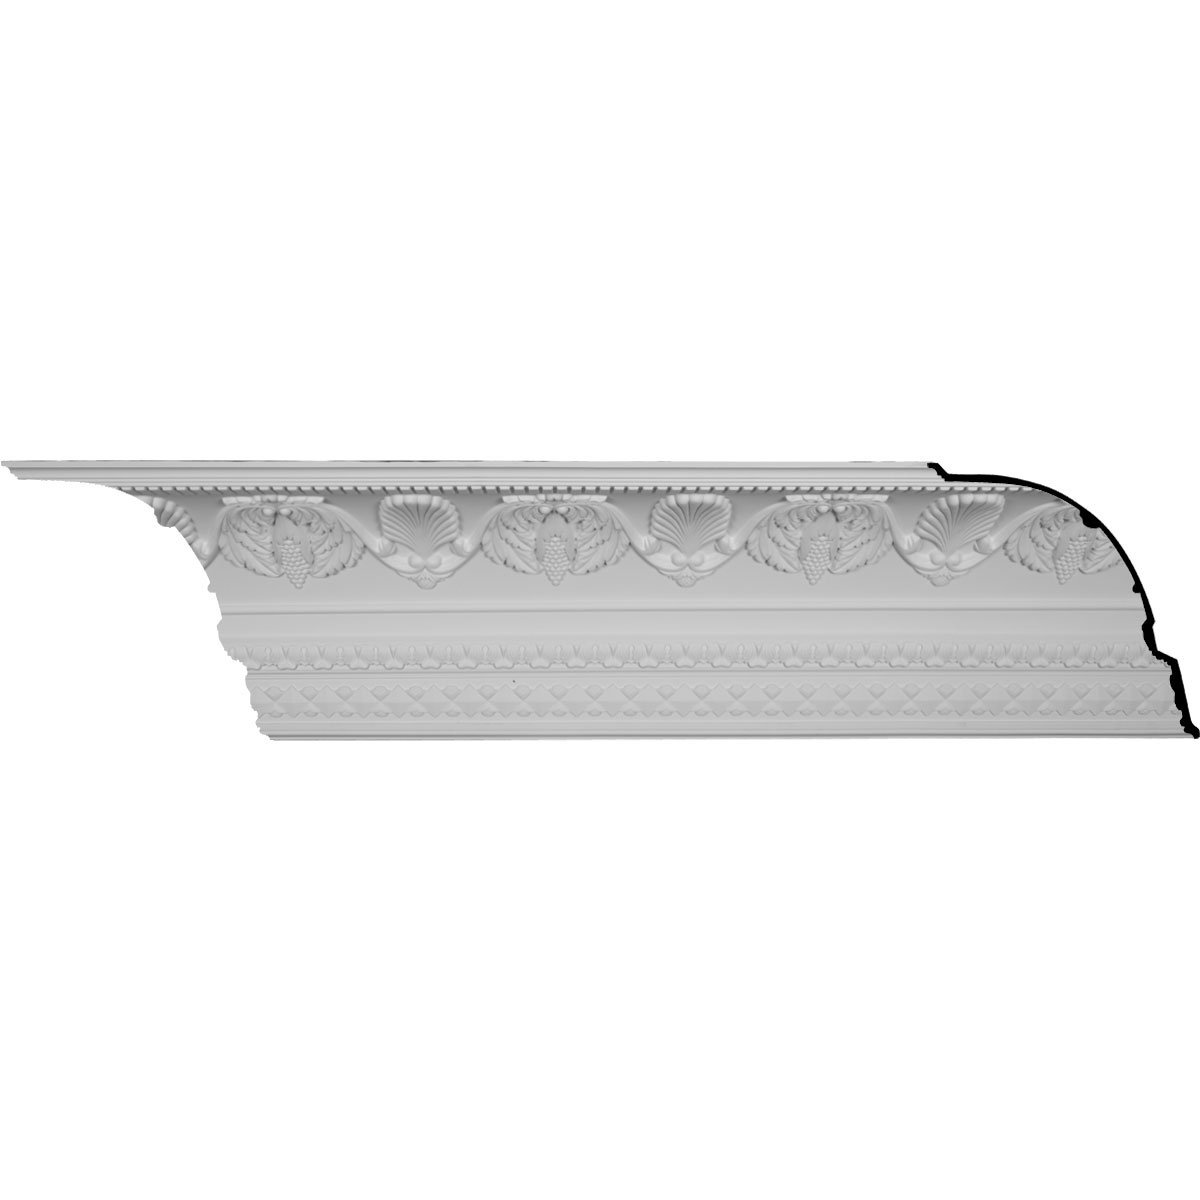 Ekena Millwork MLD16X14X21HA-CASE-12 16-3/8'' H x 14-1/8'' P x 21-5/8'' F x 96-1/8'' L Cove Harvest Crown Molding with 9-5/8'' Repeat (12-Pack)